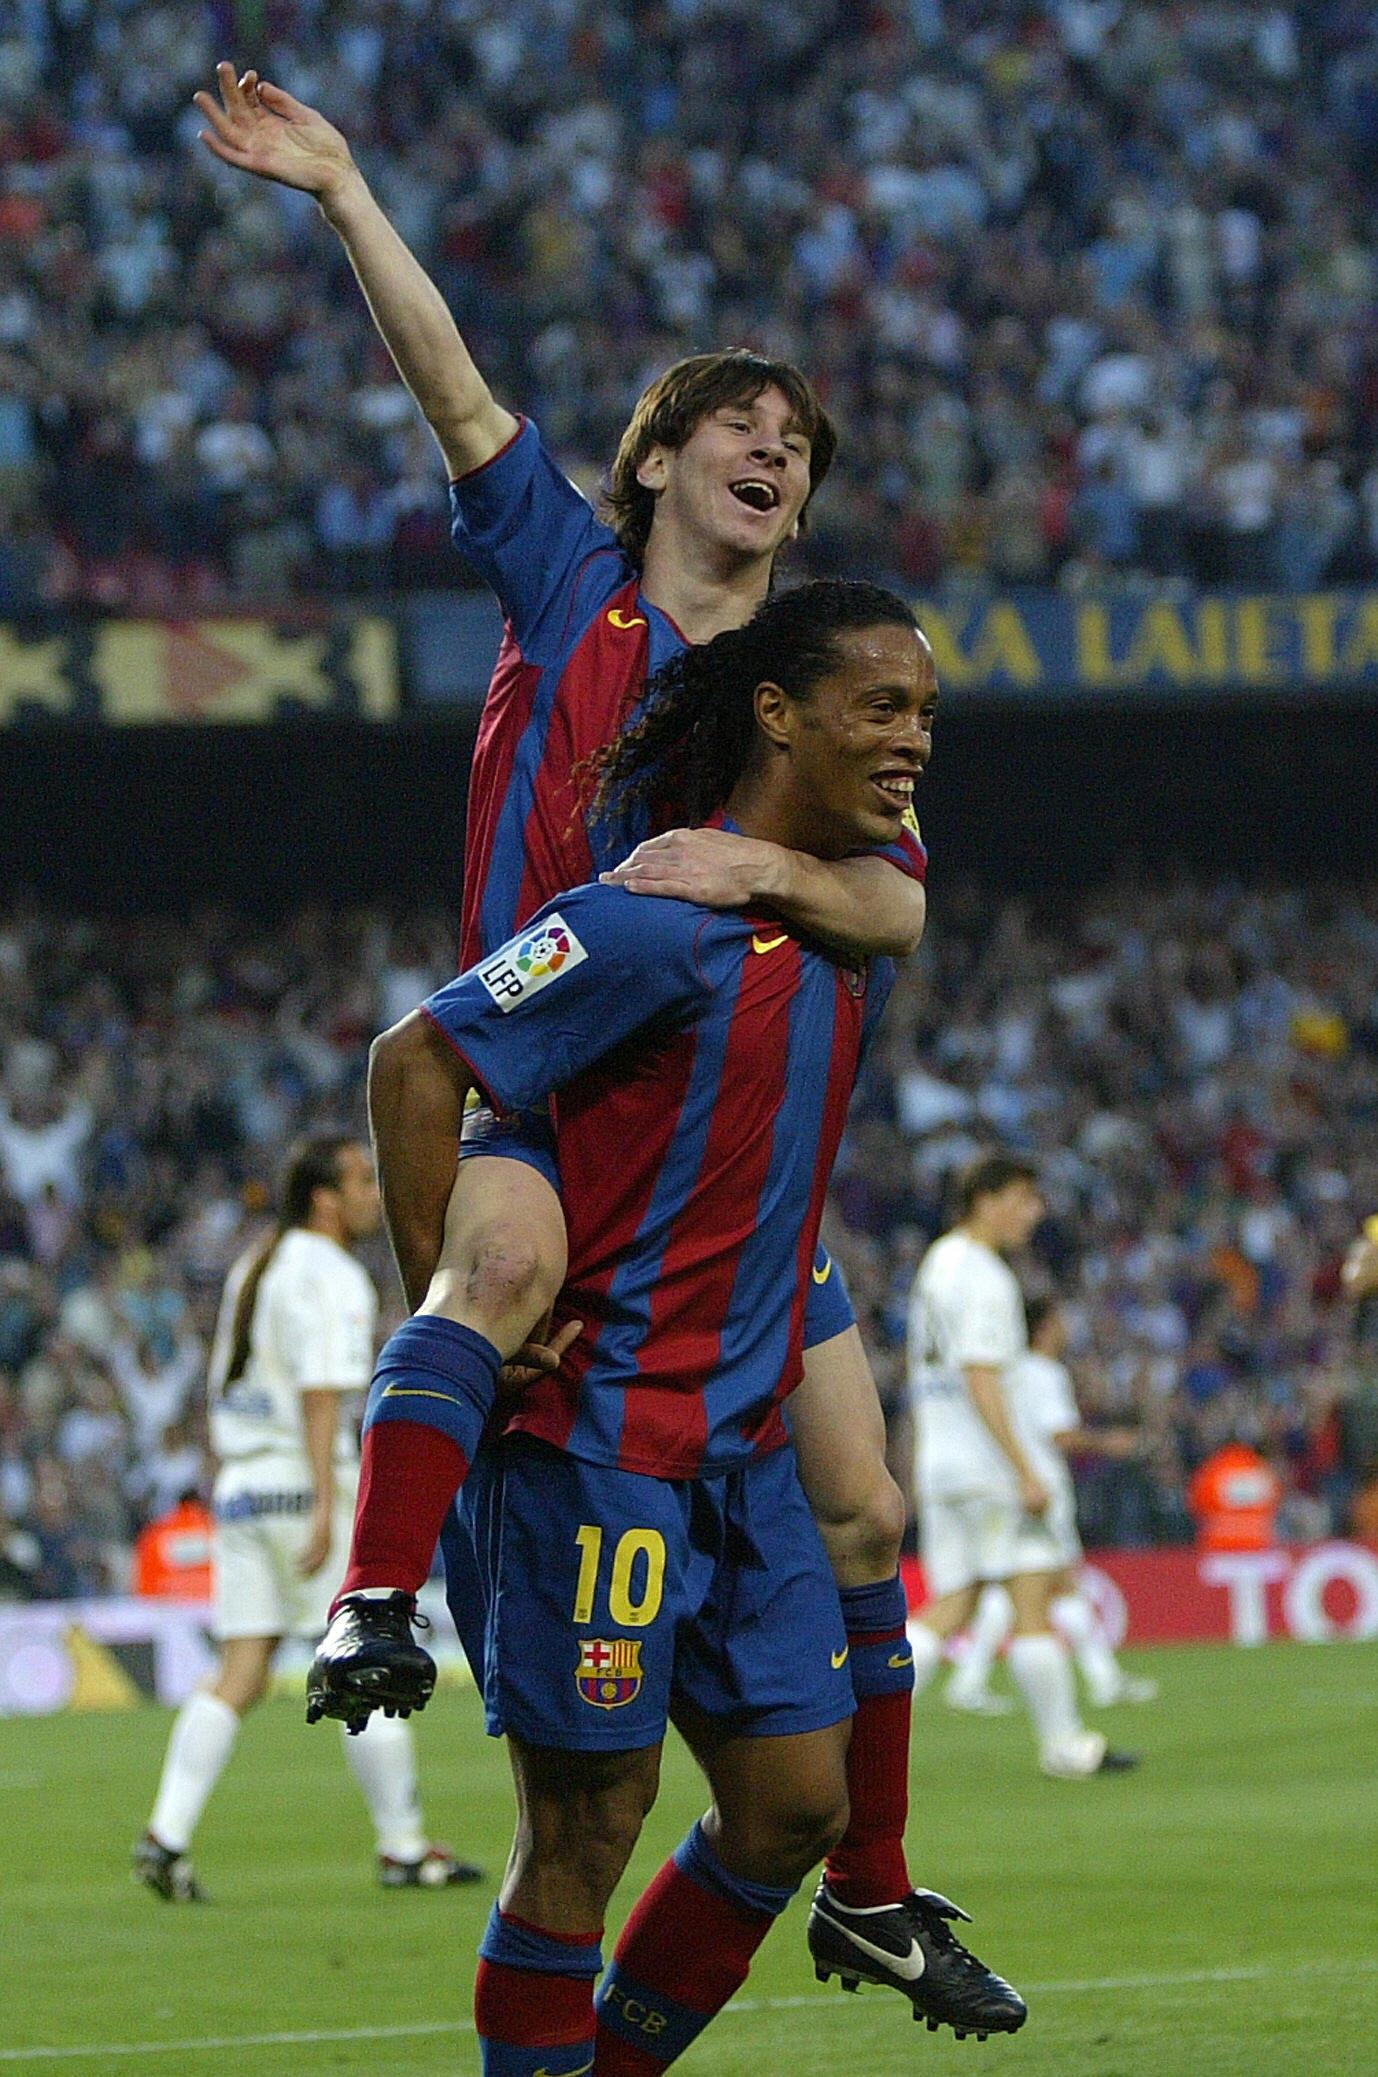 Lionel Messi kicked-off his Barcelona career when Ronaldinho was at the club